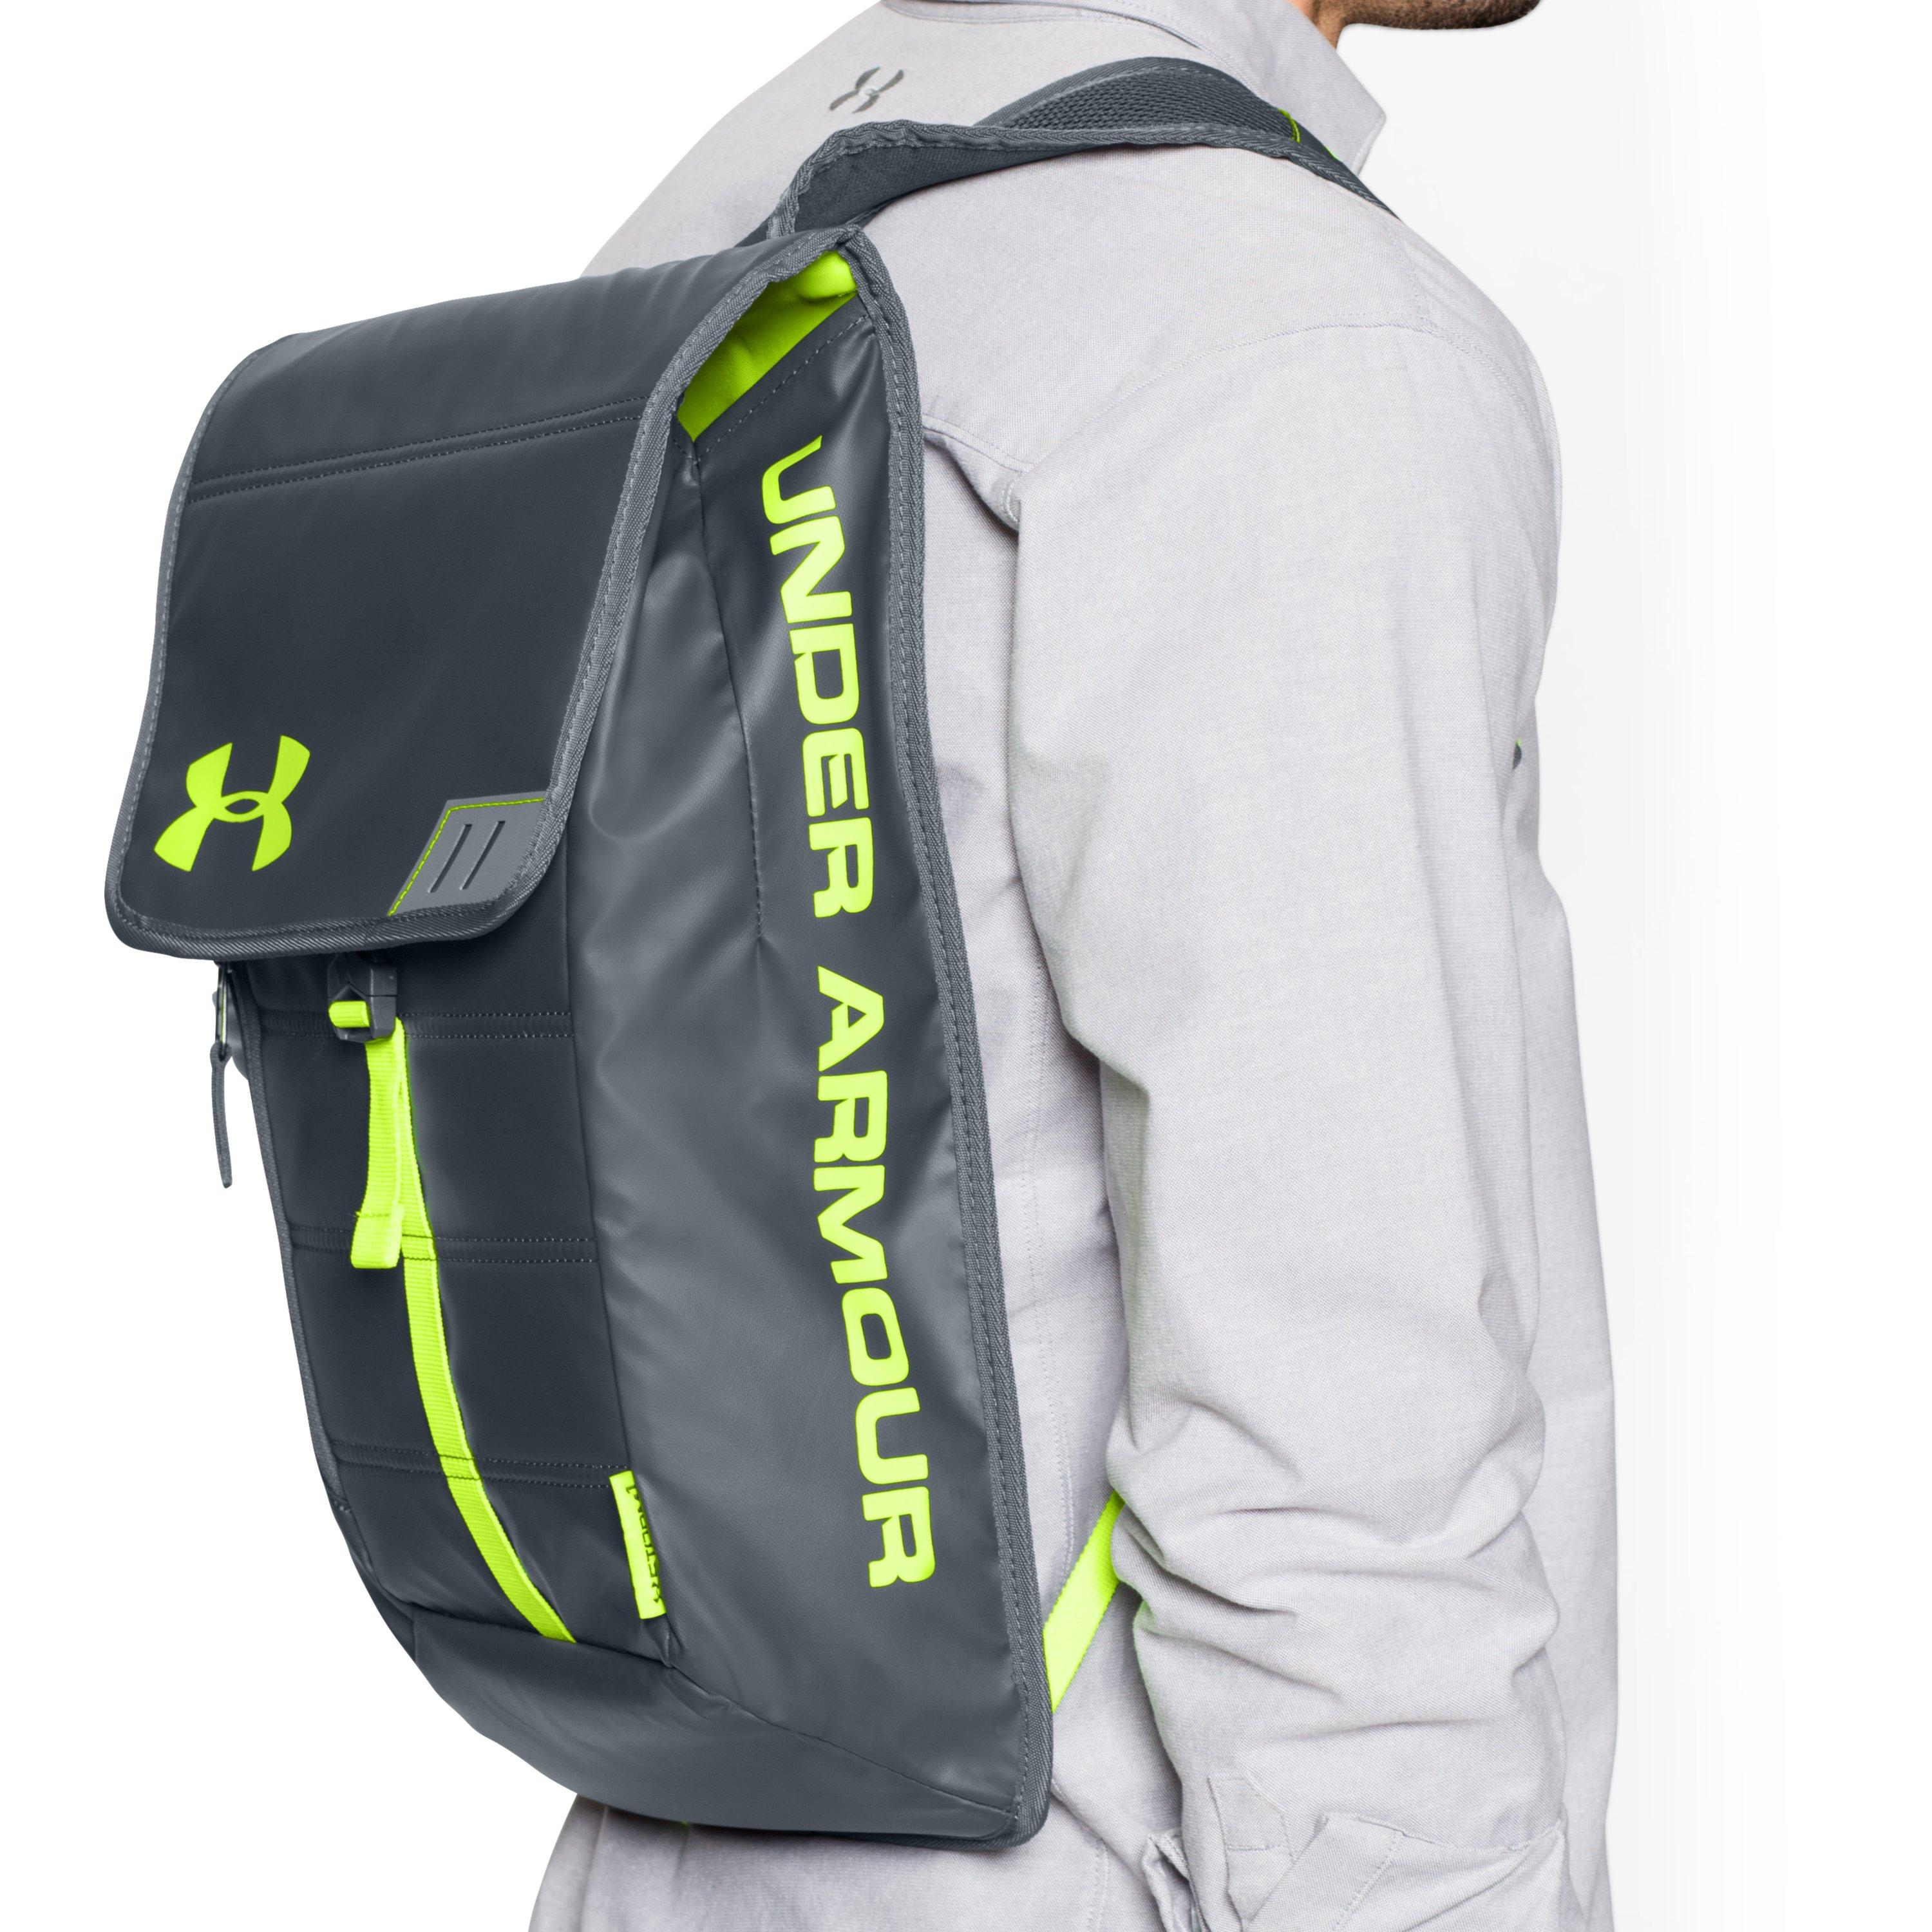 ... Lyst - Under Armour Ua Storm Tech Pack in Green for Men half off 21204  eb235 ... 97823b25792ed